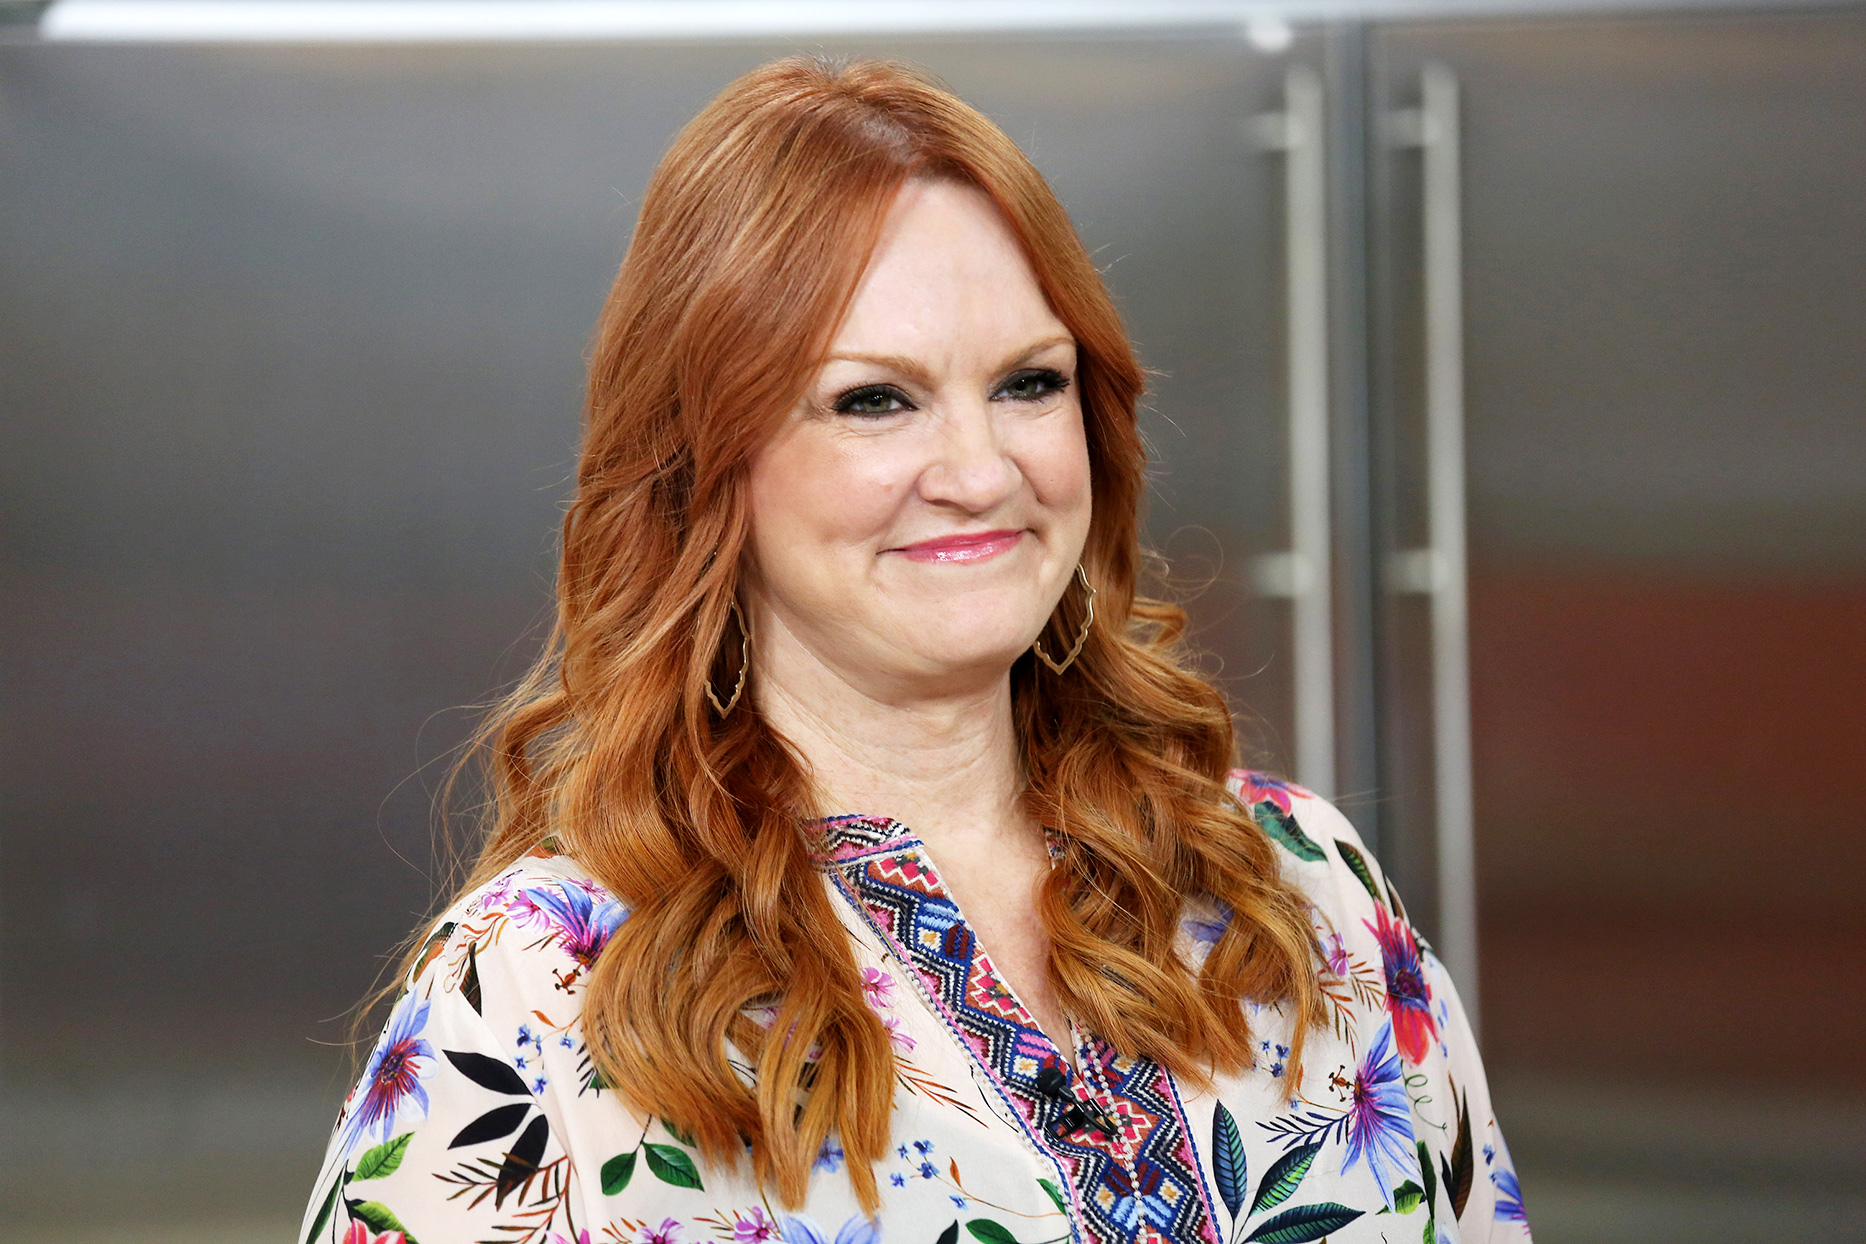 Food Network Star Ree Drummond appearing on the Today Show in 2019